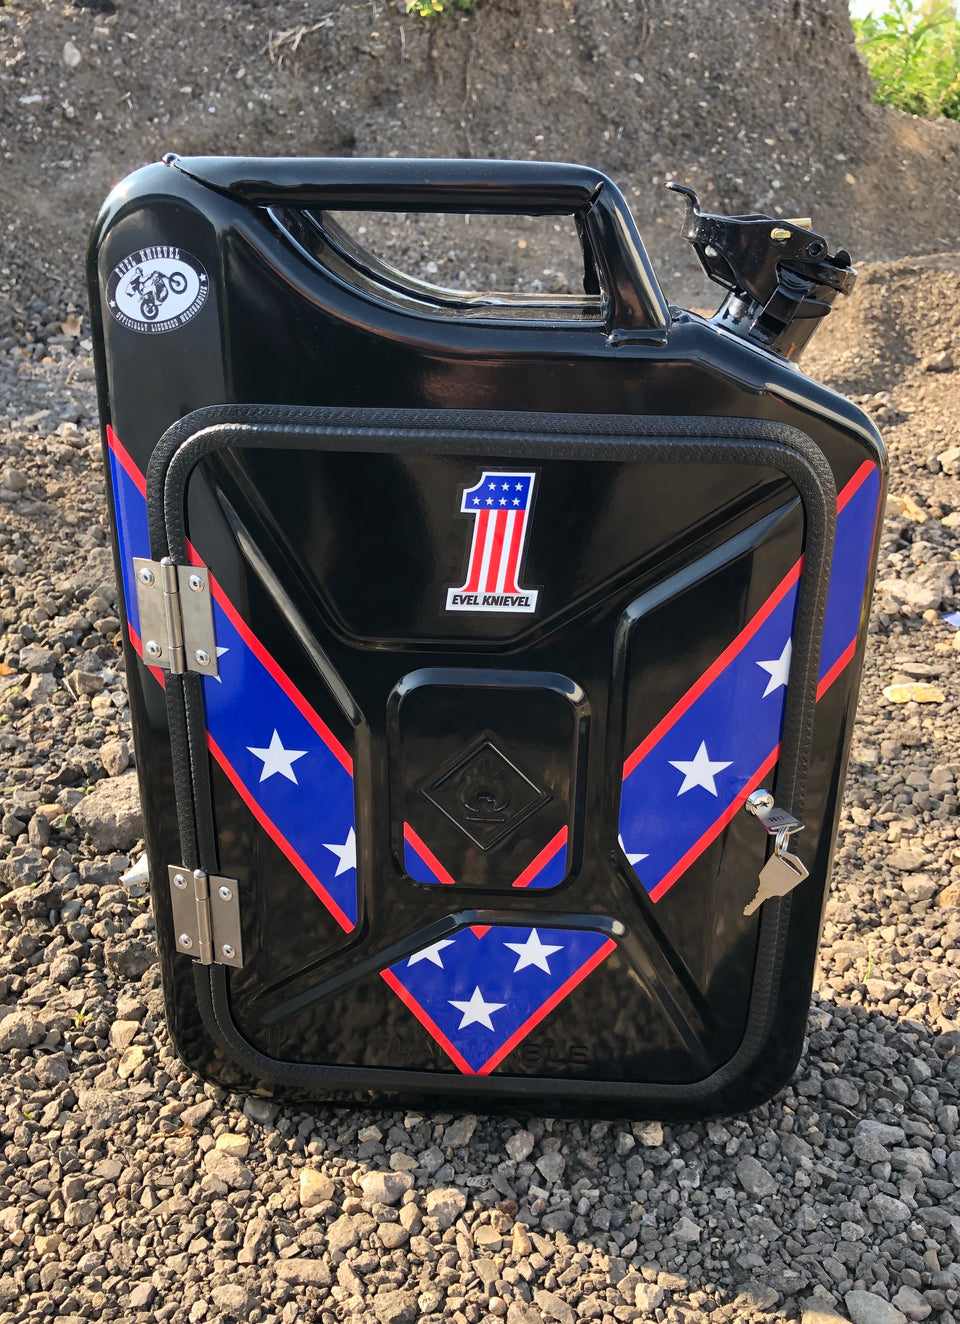 Black Evel Knievel Jerry can mini bar (licensed)